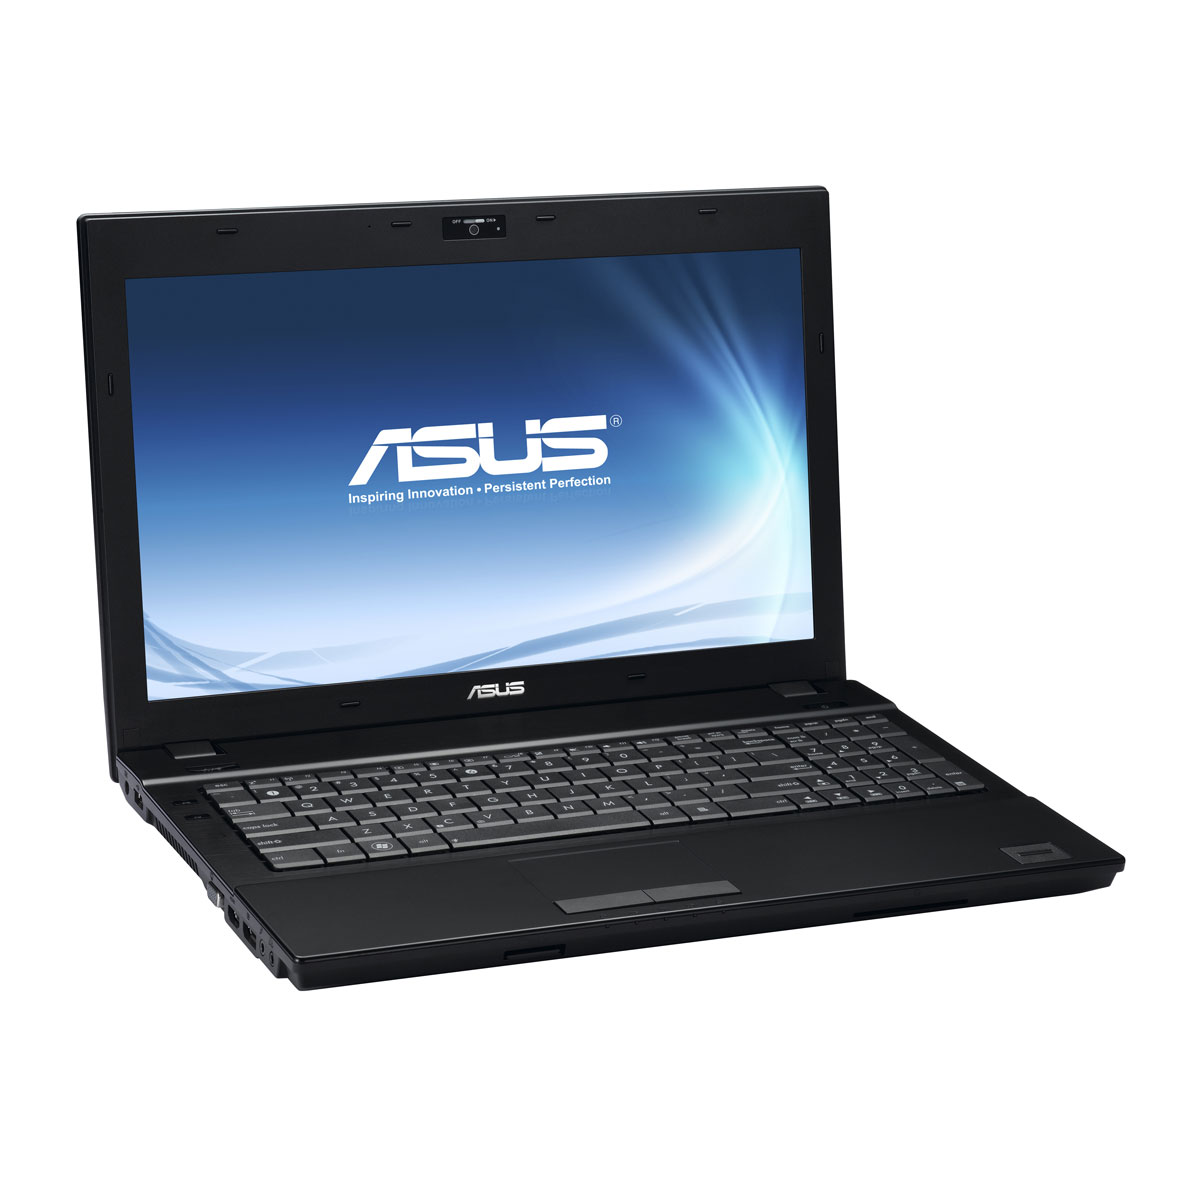 "PC portable ASUS B53V-S4050G Intel Core i5-3230M 4 Go 500 Go 15.6"" LED NVIDIA NVS 5200M Graveur DVD Wi-Fi N/Bluetooth Webcam Windows 7 Professionnel 64 bits / Windows 8 Pro (garantie constructeur 1 an)"